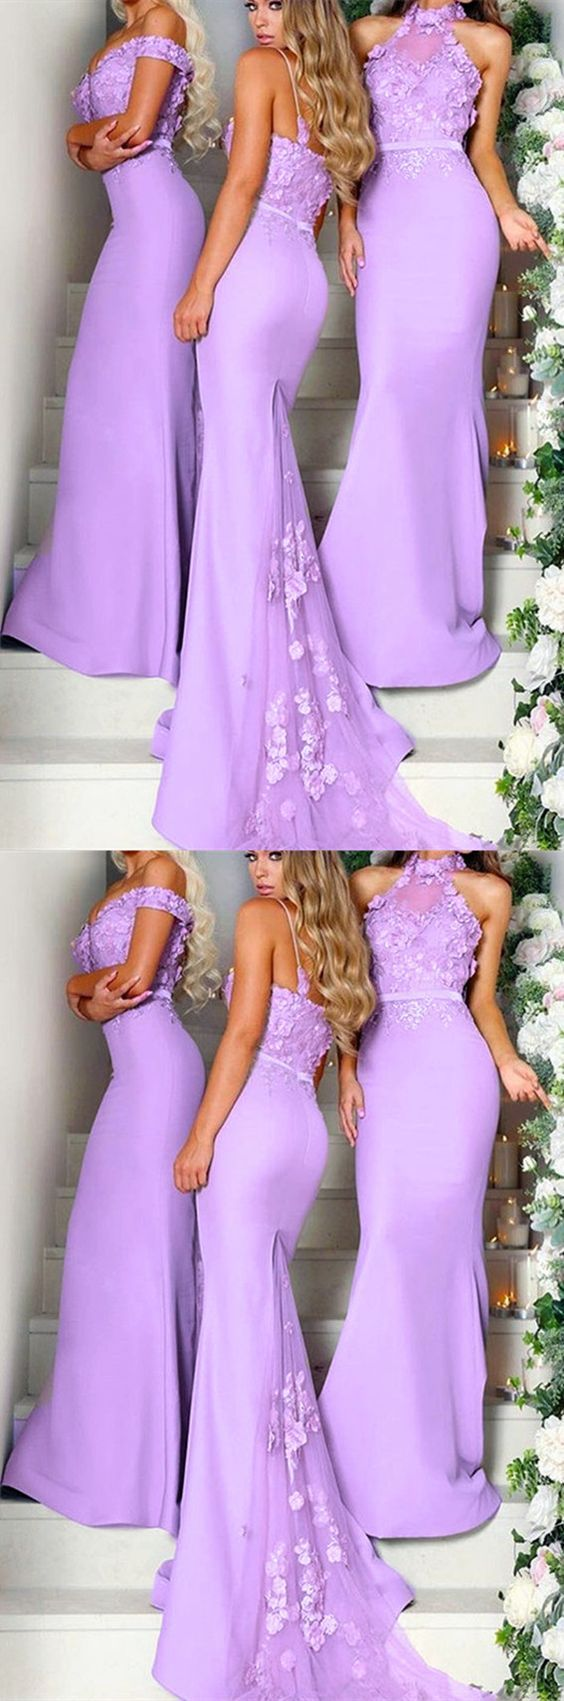 Chic lace flowers embroidery mermaid long bridesmaid dresses